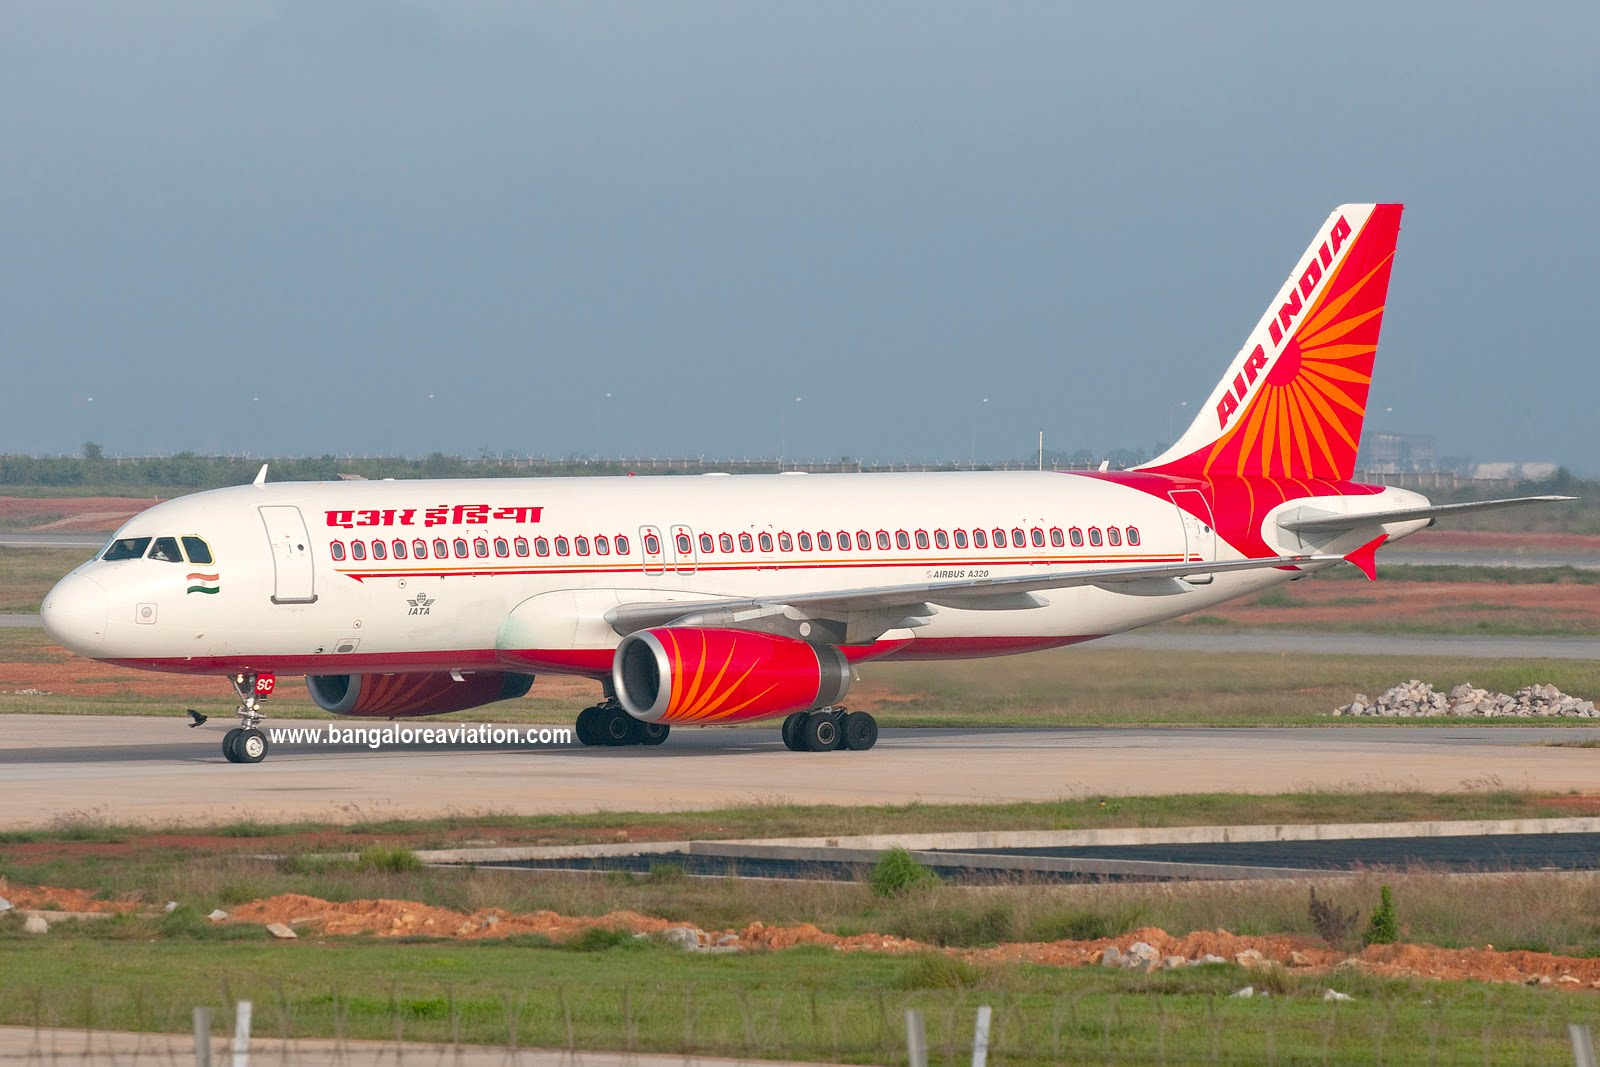 air india Find cheap flights and airline tickets google flights helps you compare and track airfares on hundreds of airlines to help you find the best flight deals.